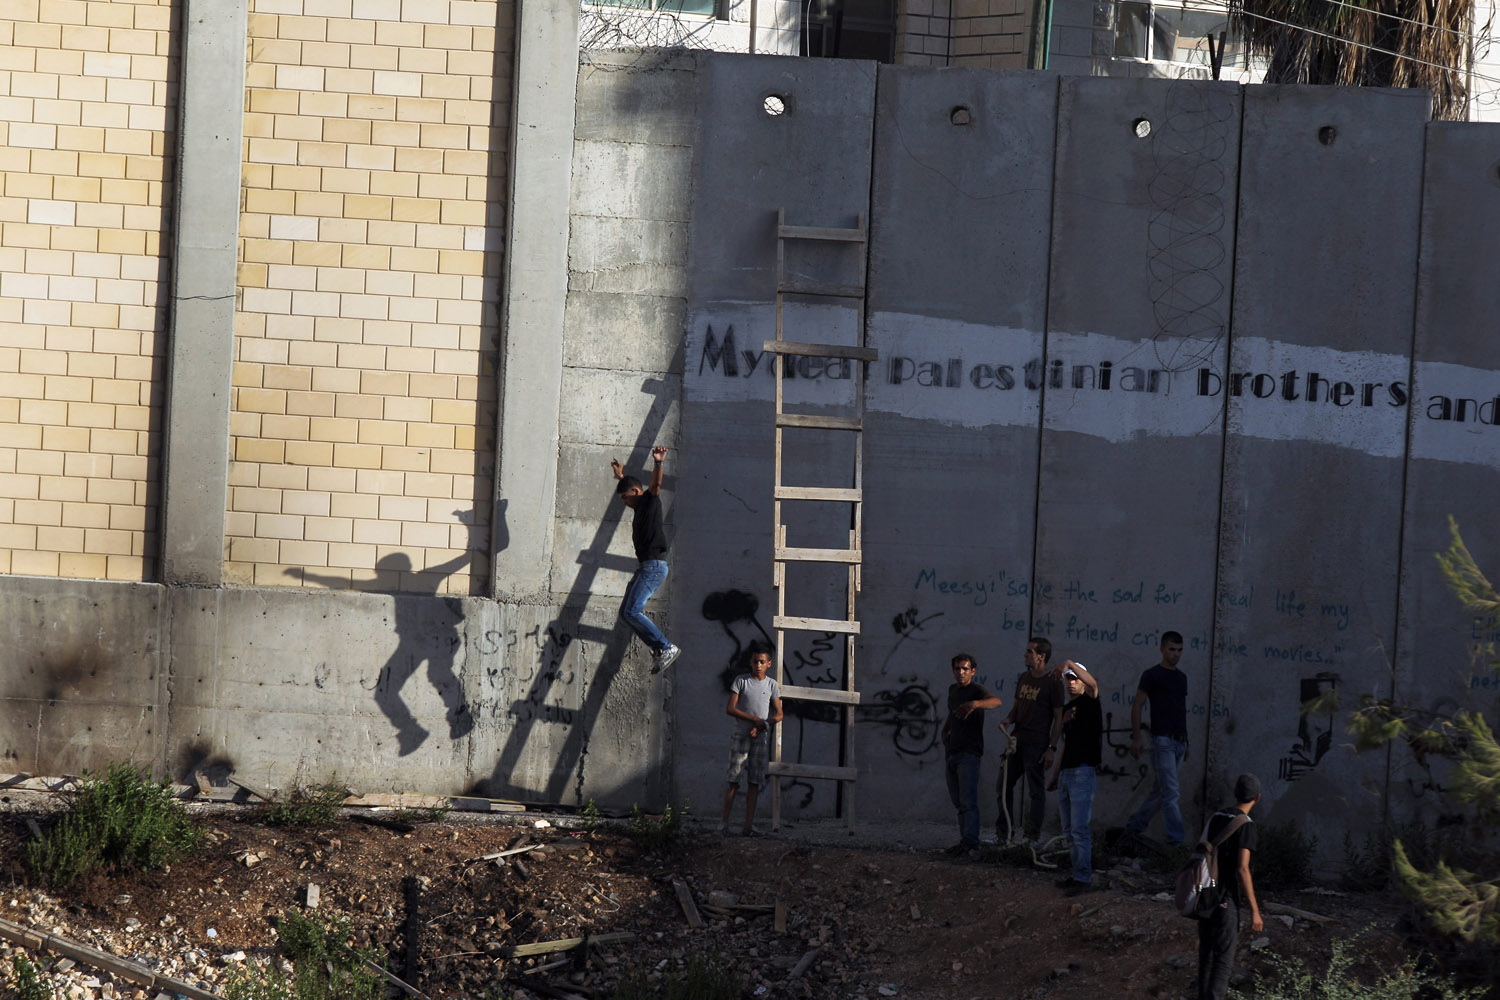 Aug. 14, 2012. Palestinian men use a ladder to cross over the separation wall, in the Palestinian town of A-Ram, North of Jerusalem, in the West Bank.